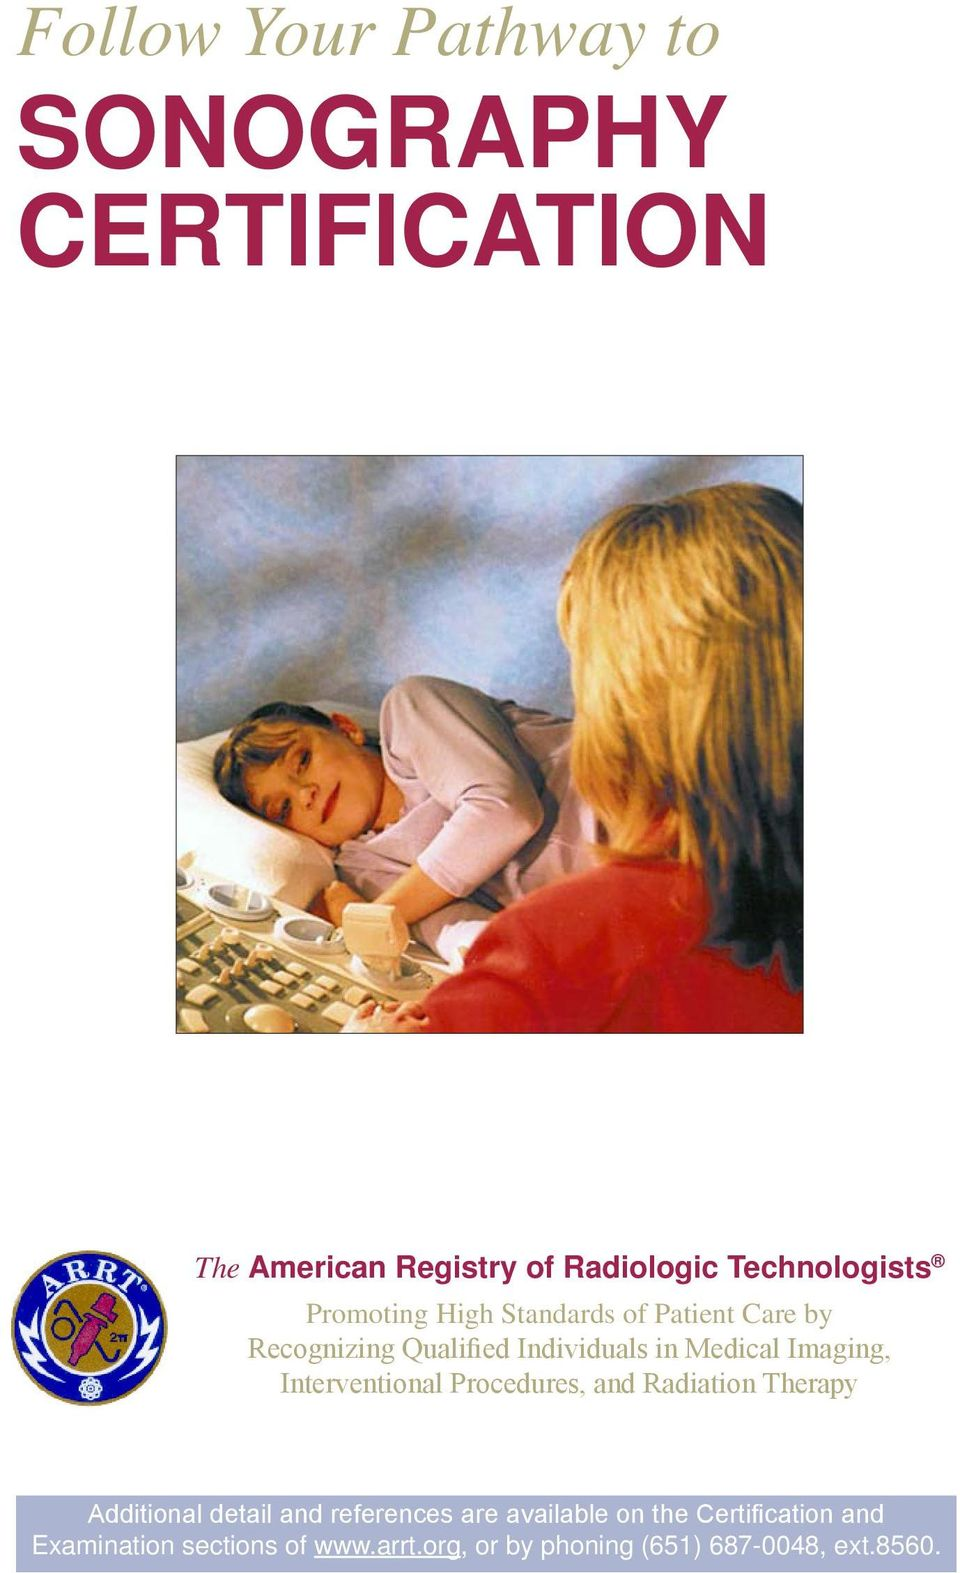 Follow Your Pathway To Sonography Certification Pdf